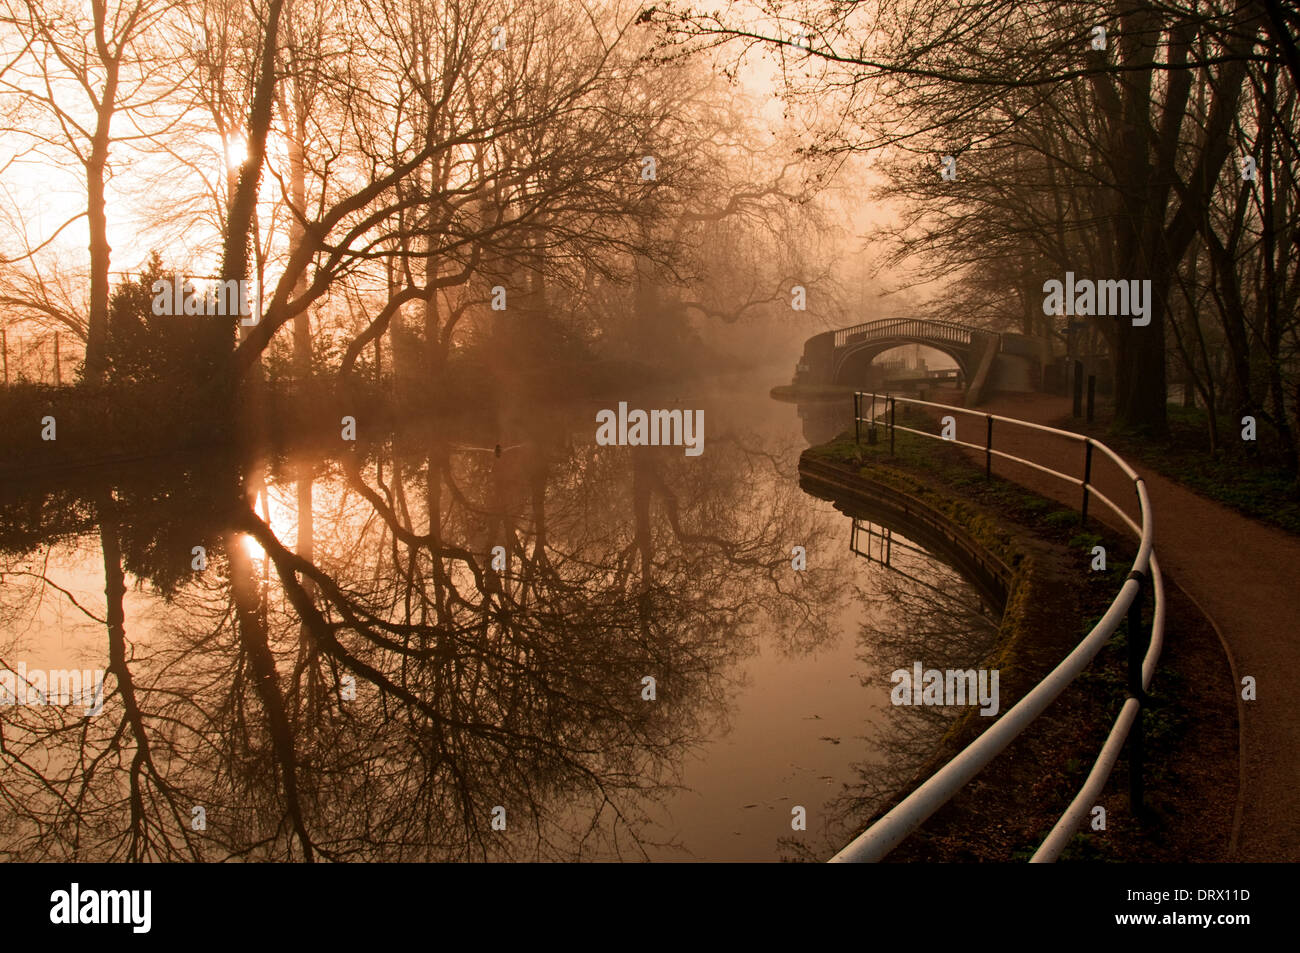 Oxford Canal and towpath, early morning. - Stock Image